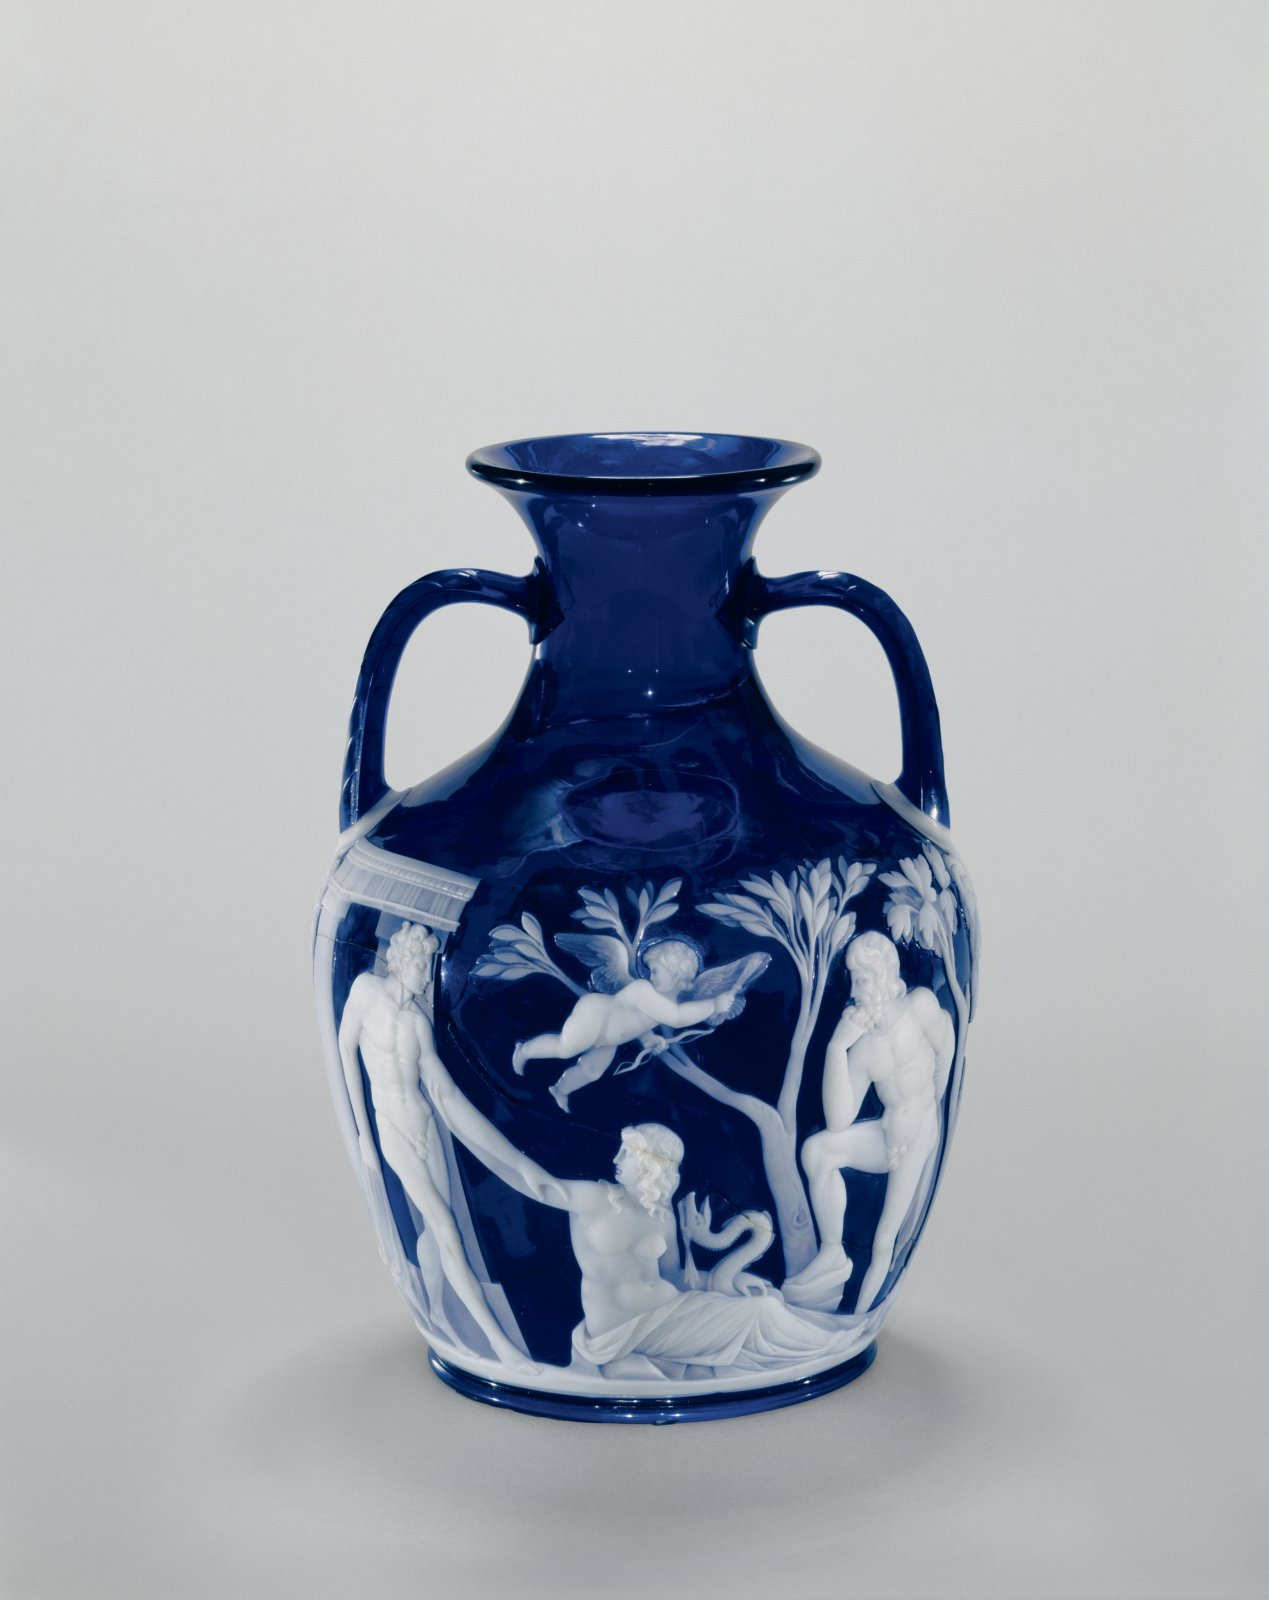 Collection search corning museum of glass replica of the portland vase reviewsmspy